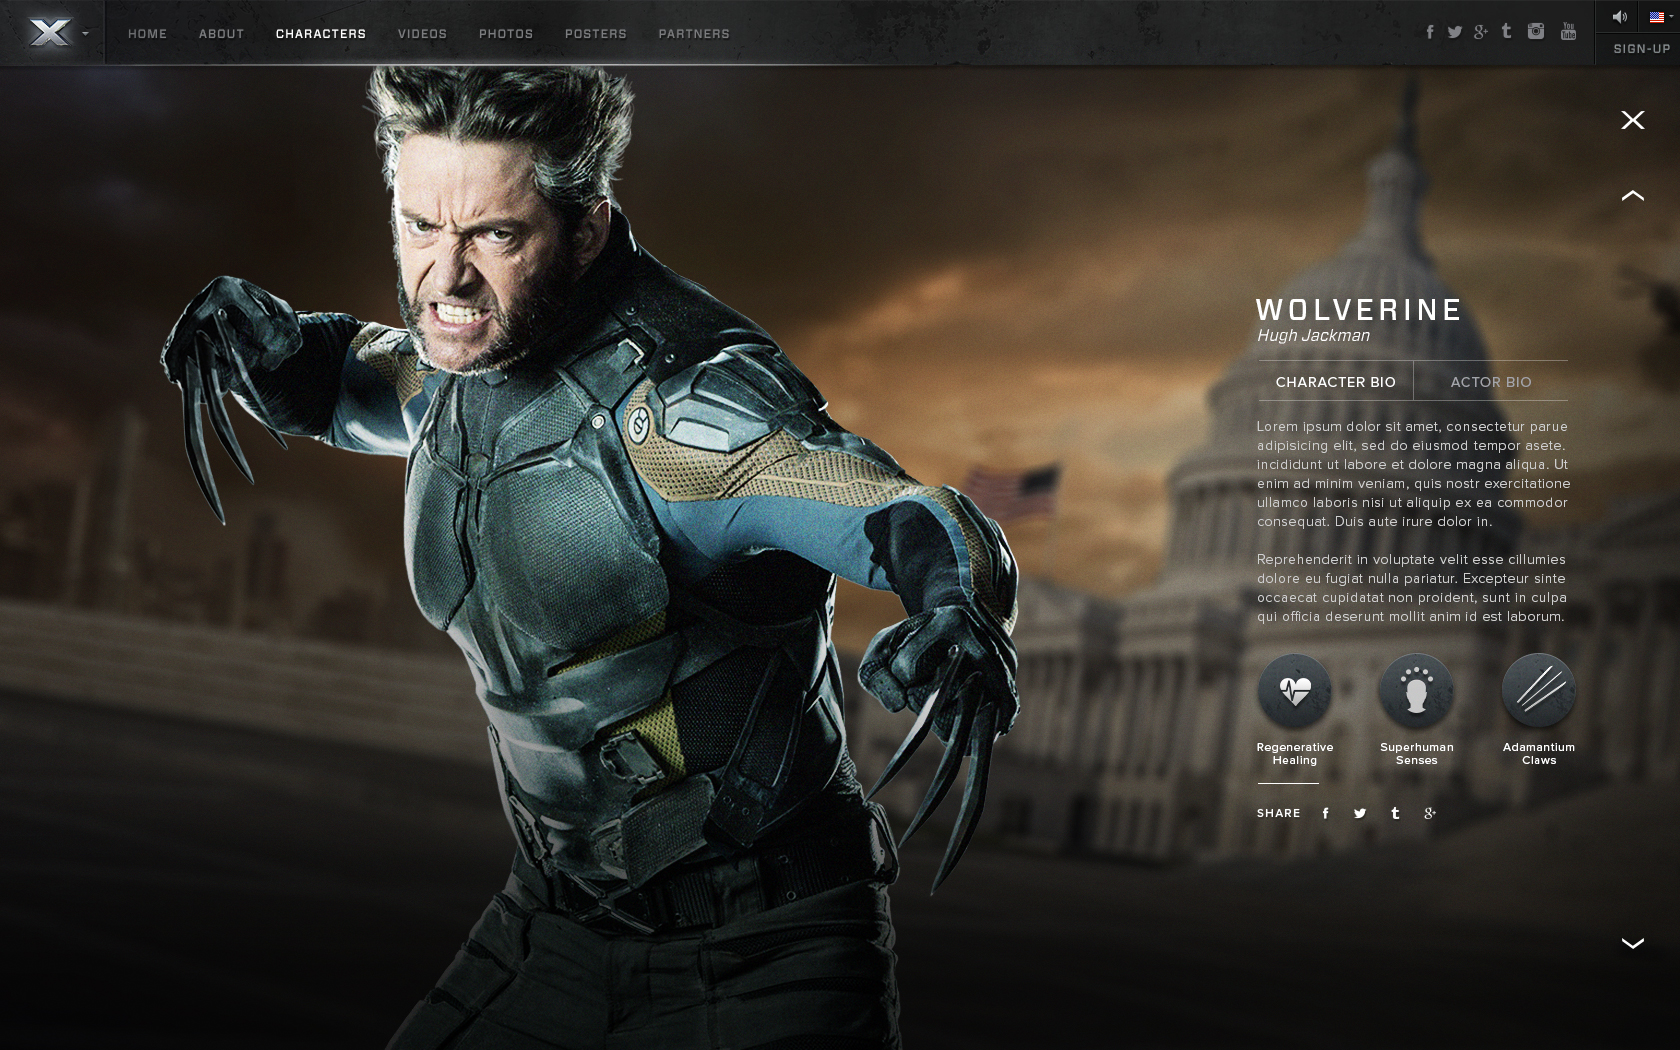 XDOFP_2character_BT_10_Wolverine